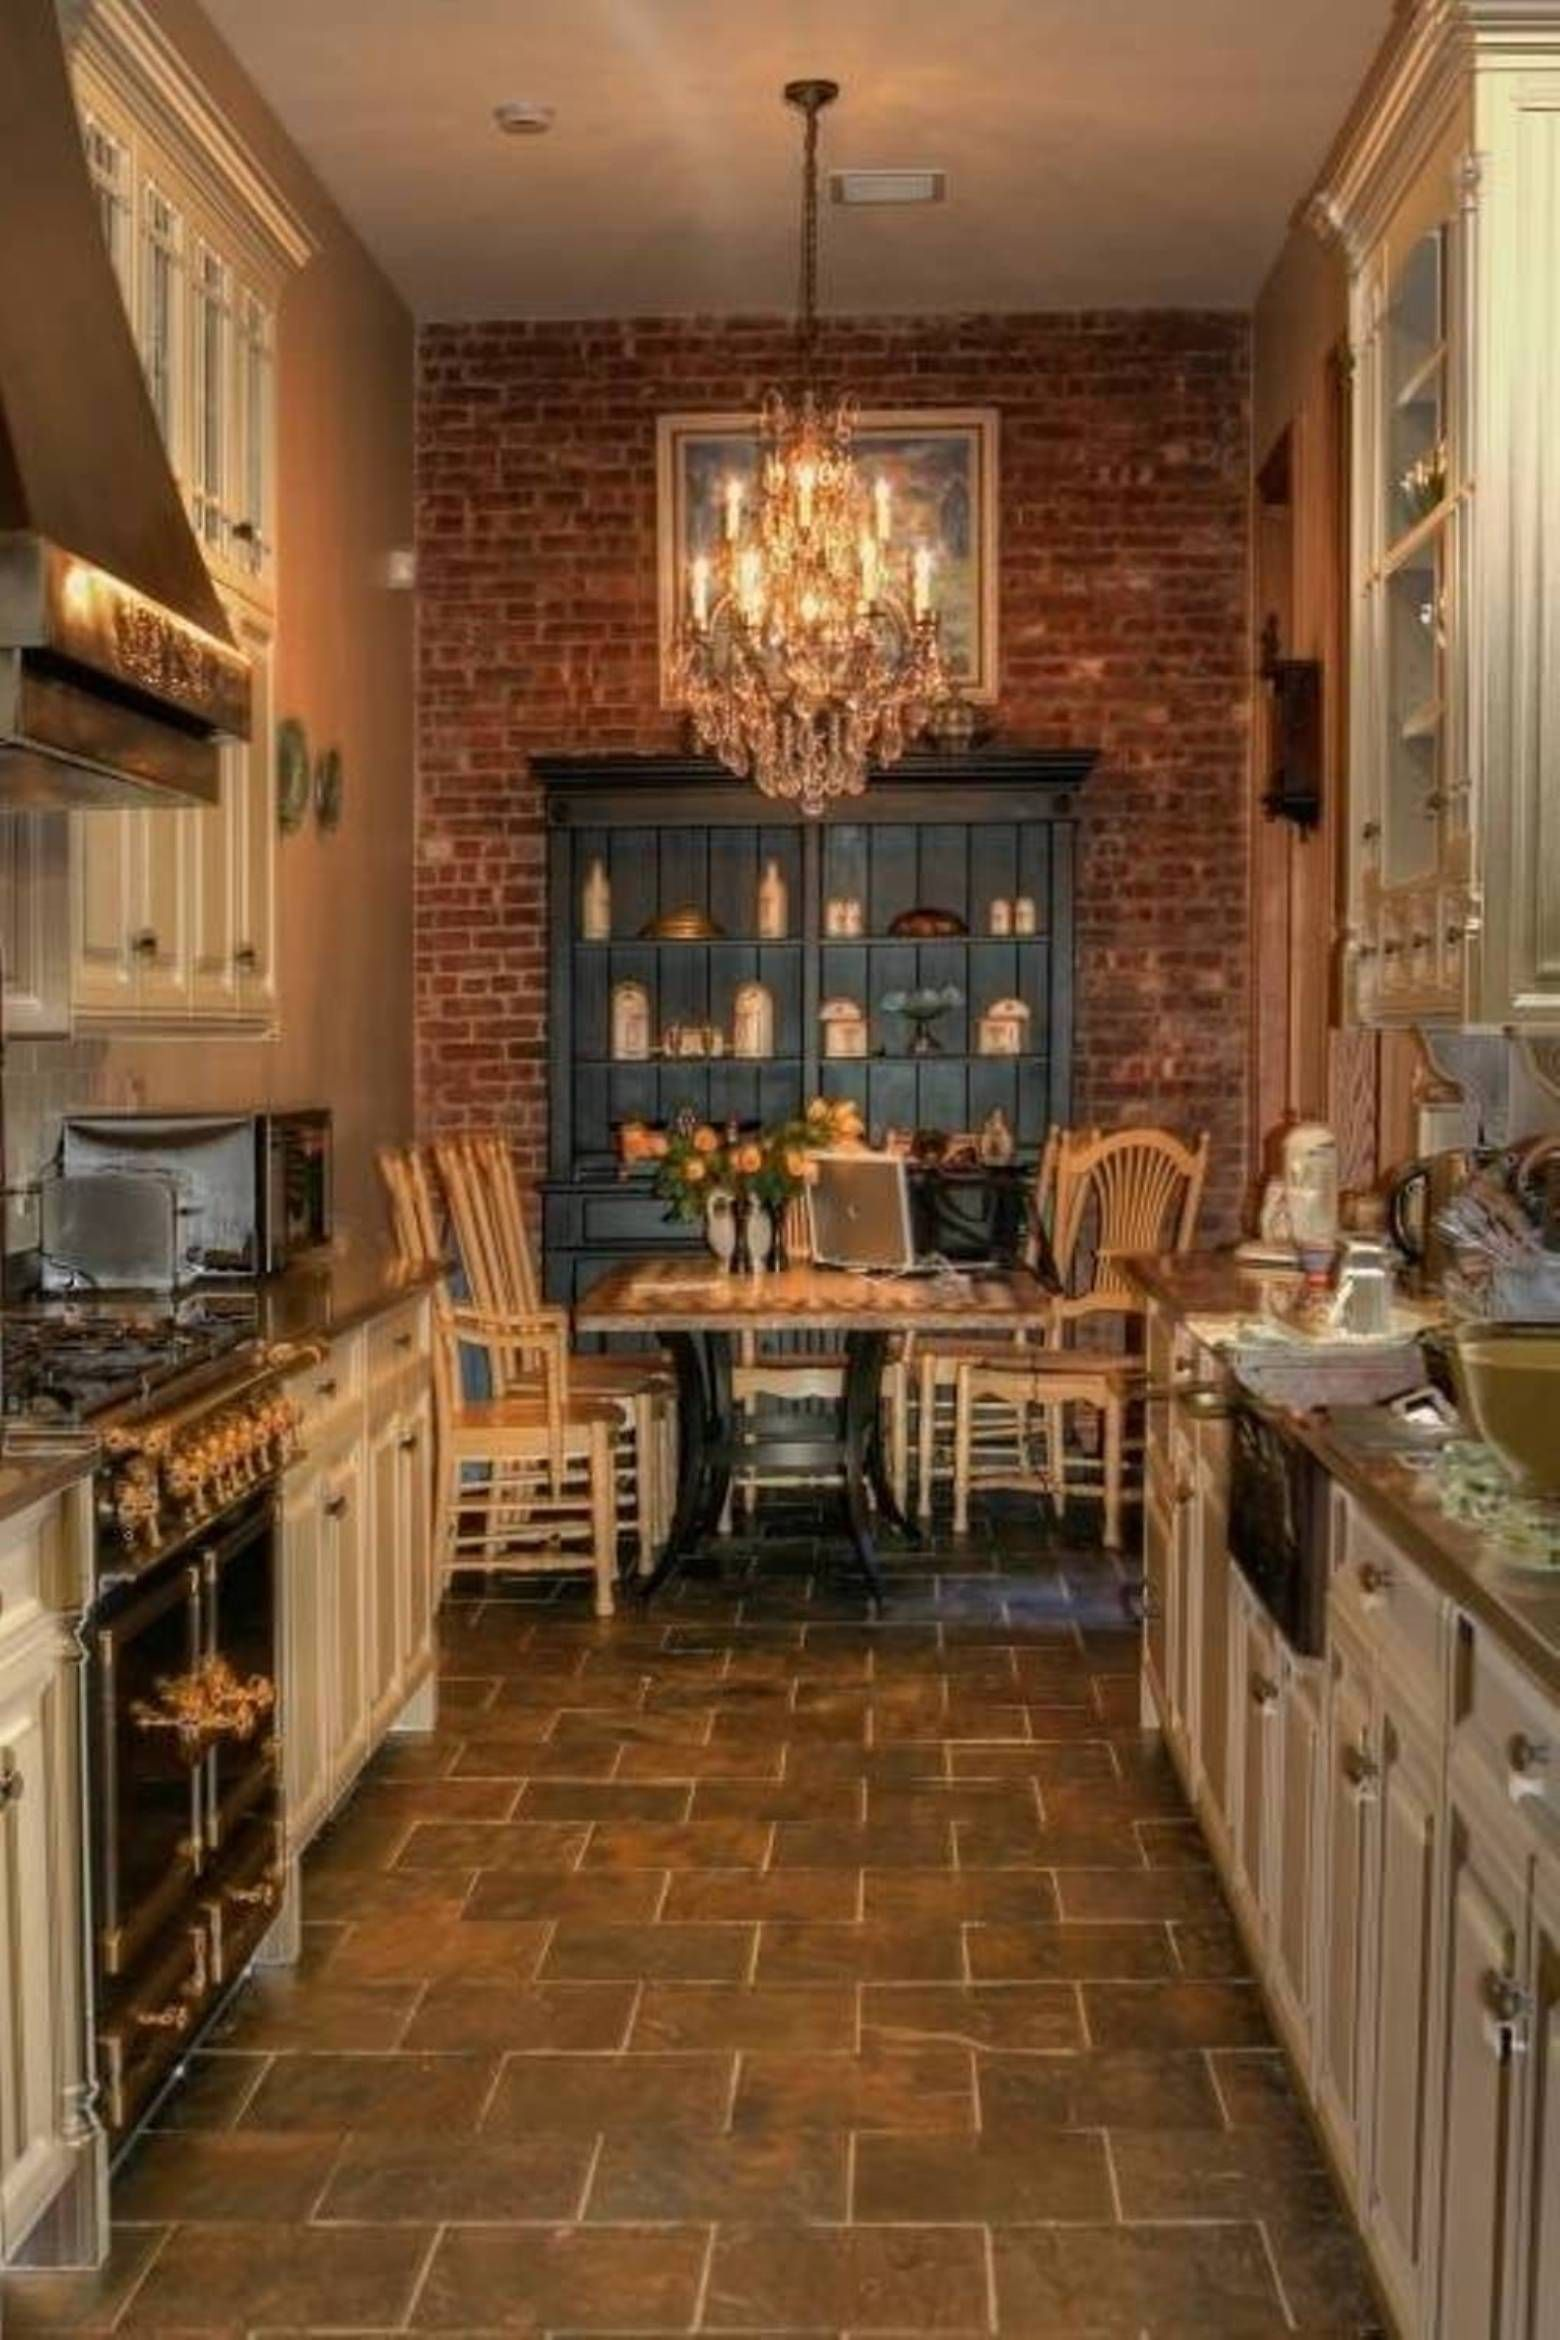 LOVE This Kitchen: Rustic Design Galley Kitchen Floor Plans : Floor Ideas  For Galley Kitchen Floor Plans U2013 Better Home And Garden, I Love The Brick  Wall, ...